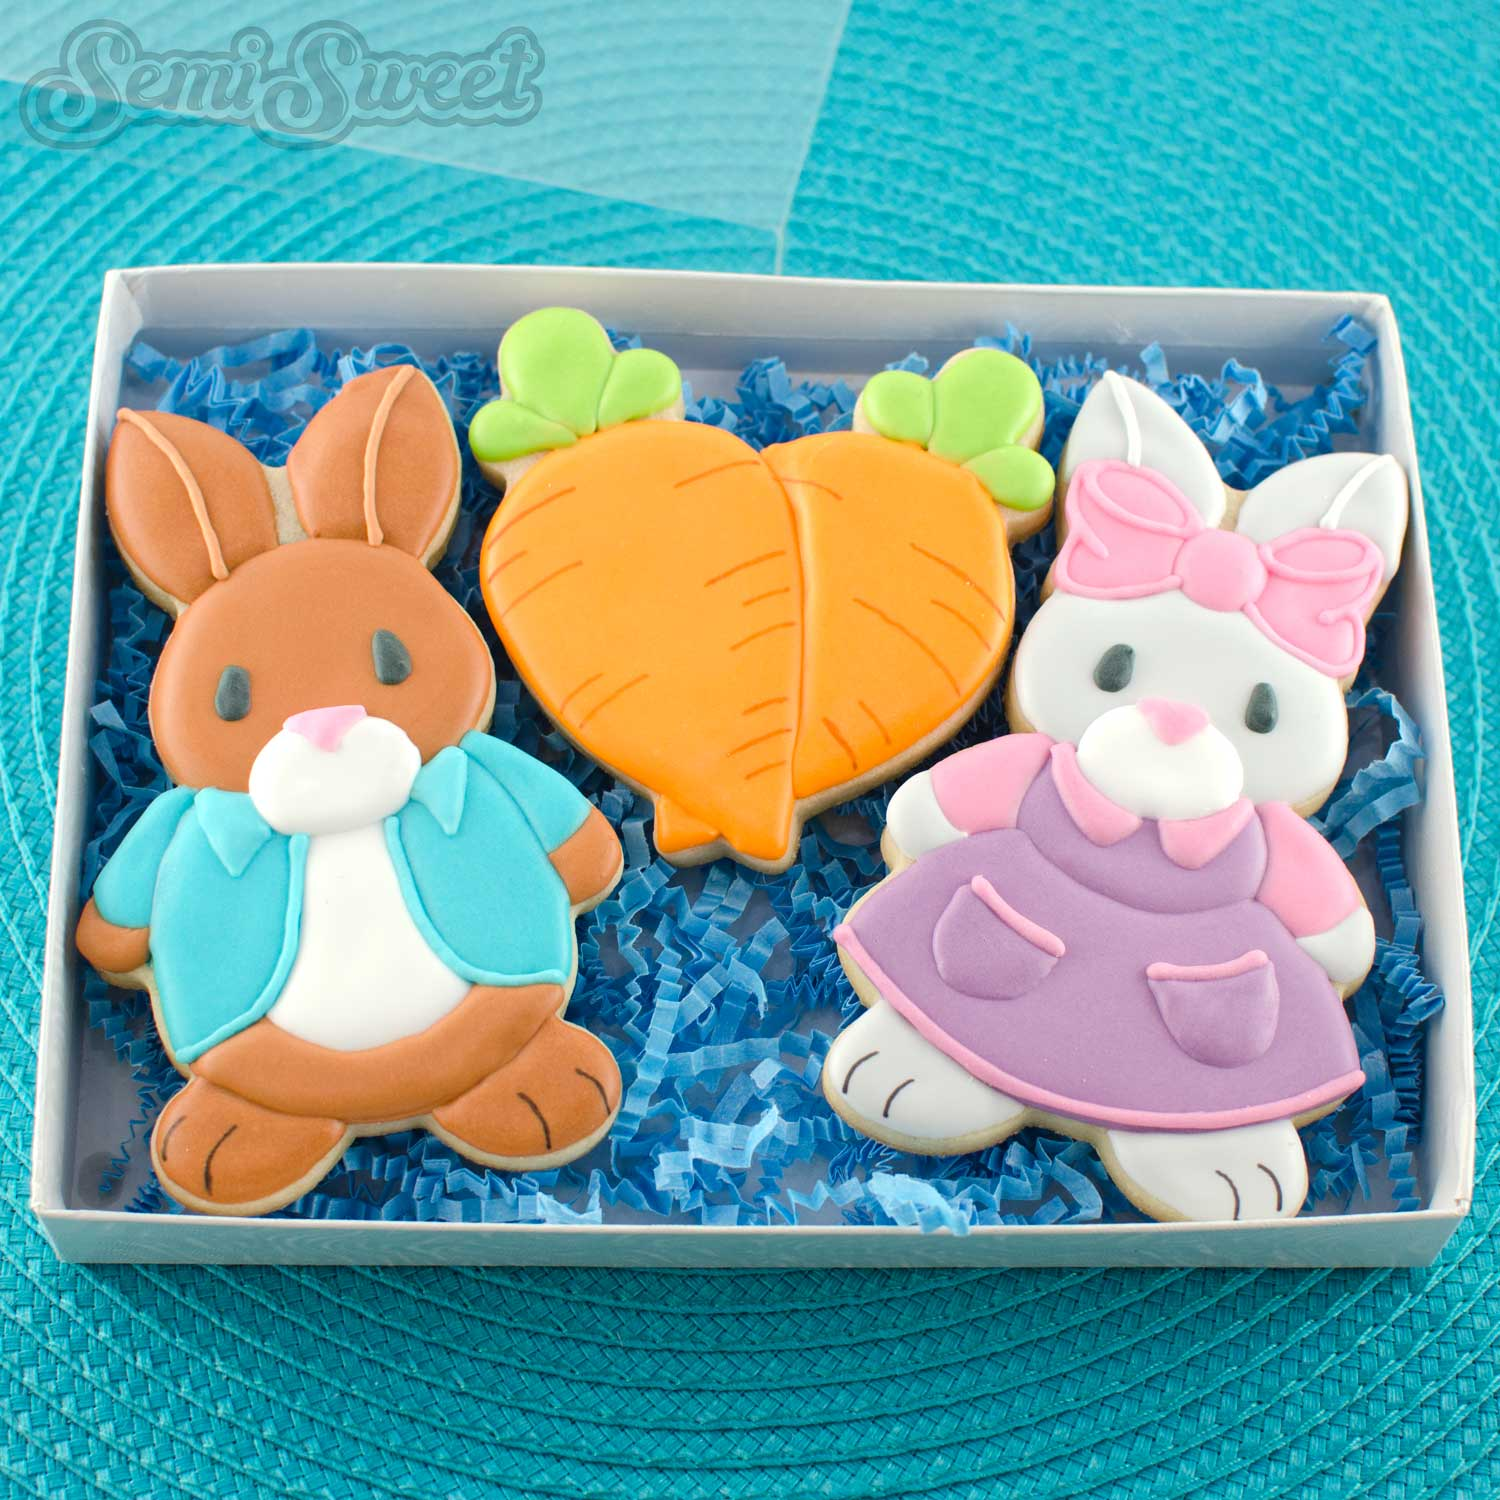 peter rabbit cookies in papermart box